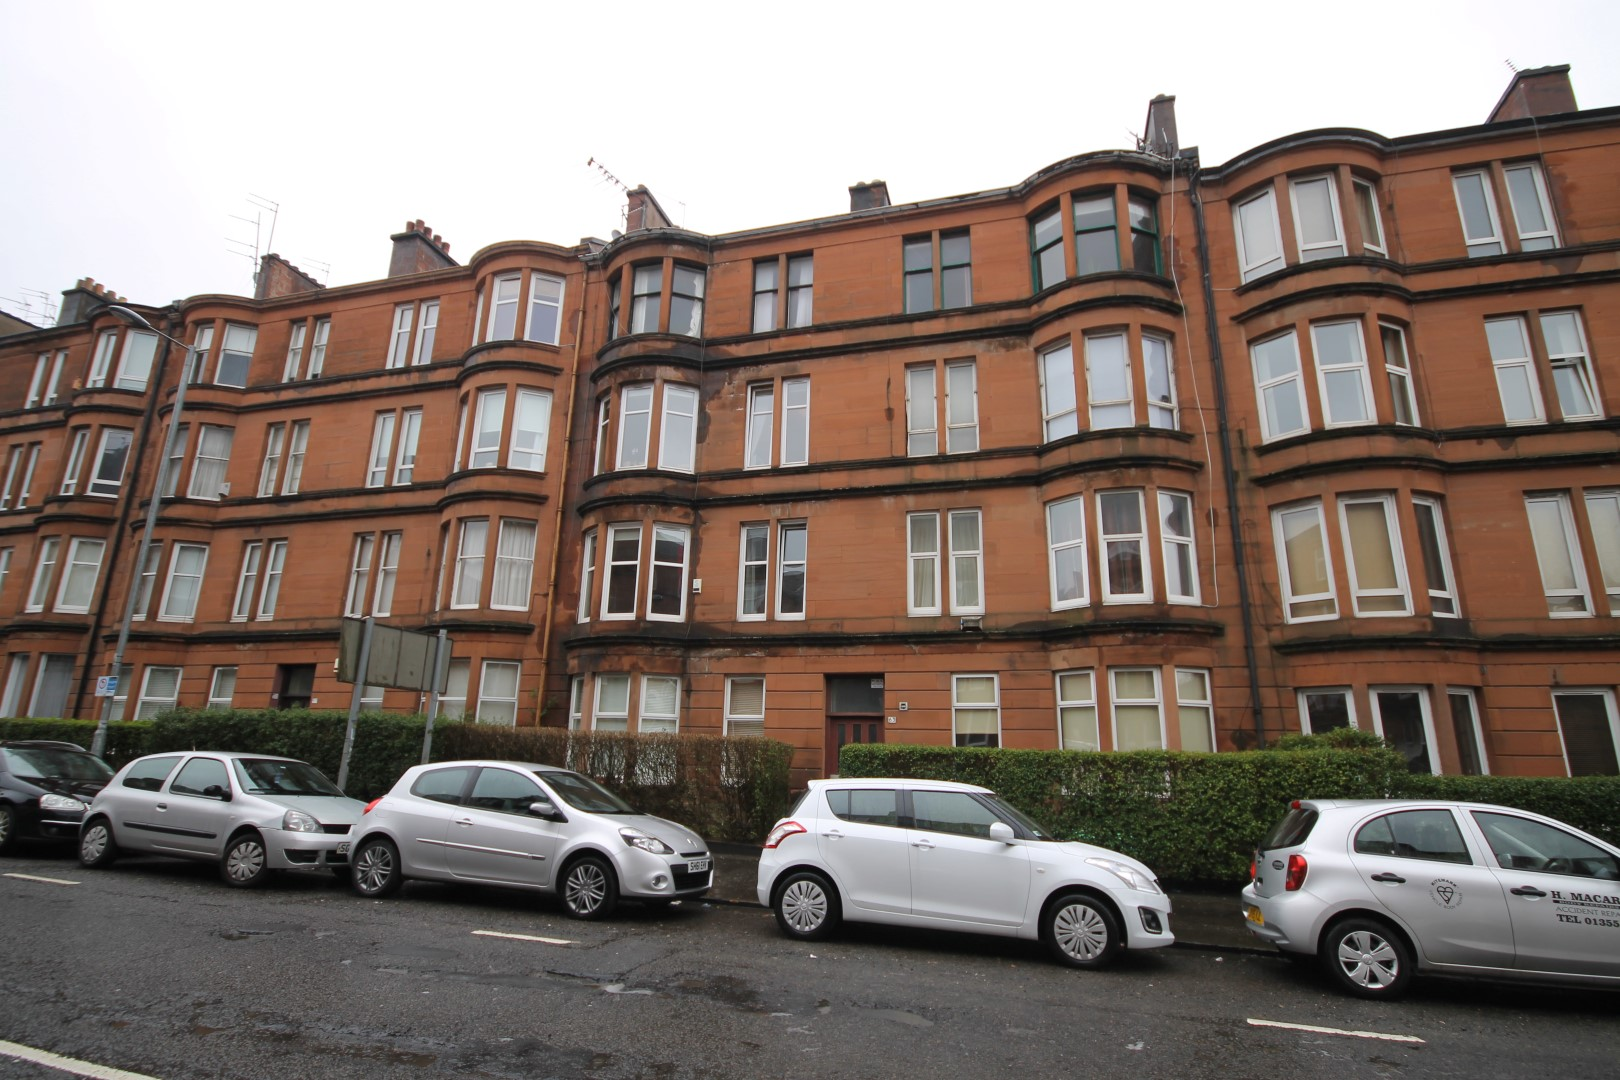 SHAWLANDS – 2 Bedroom Flat